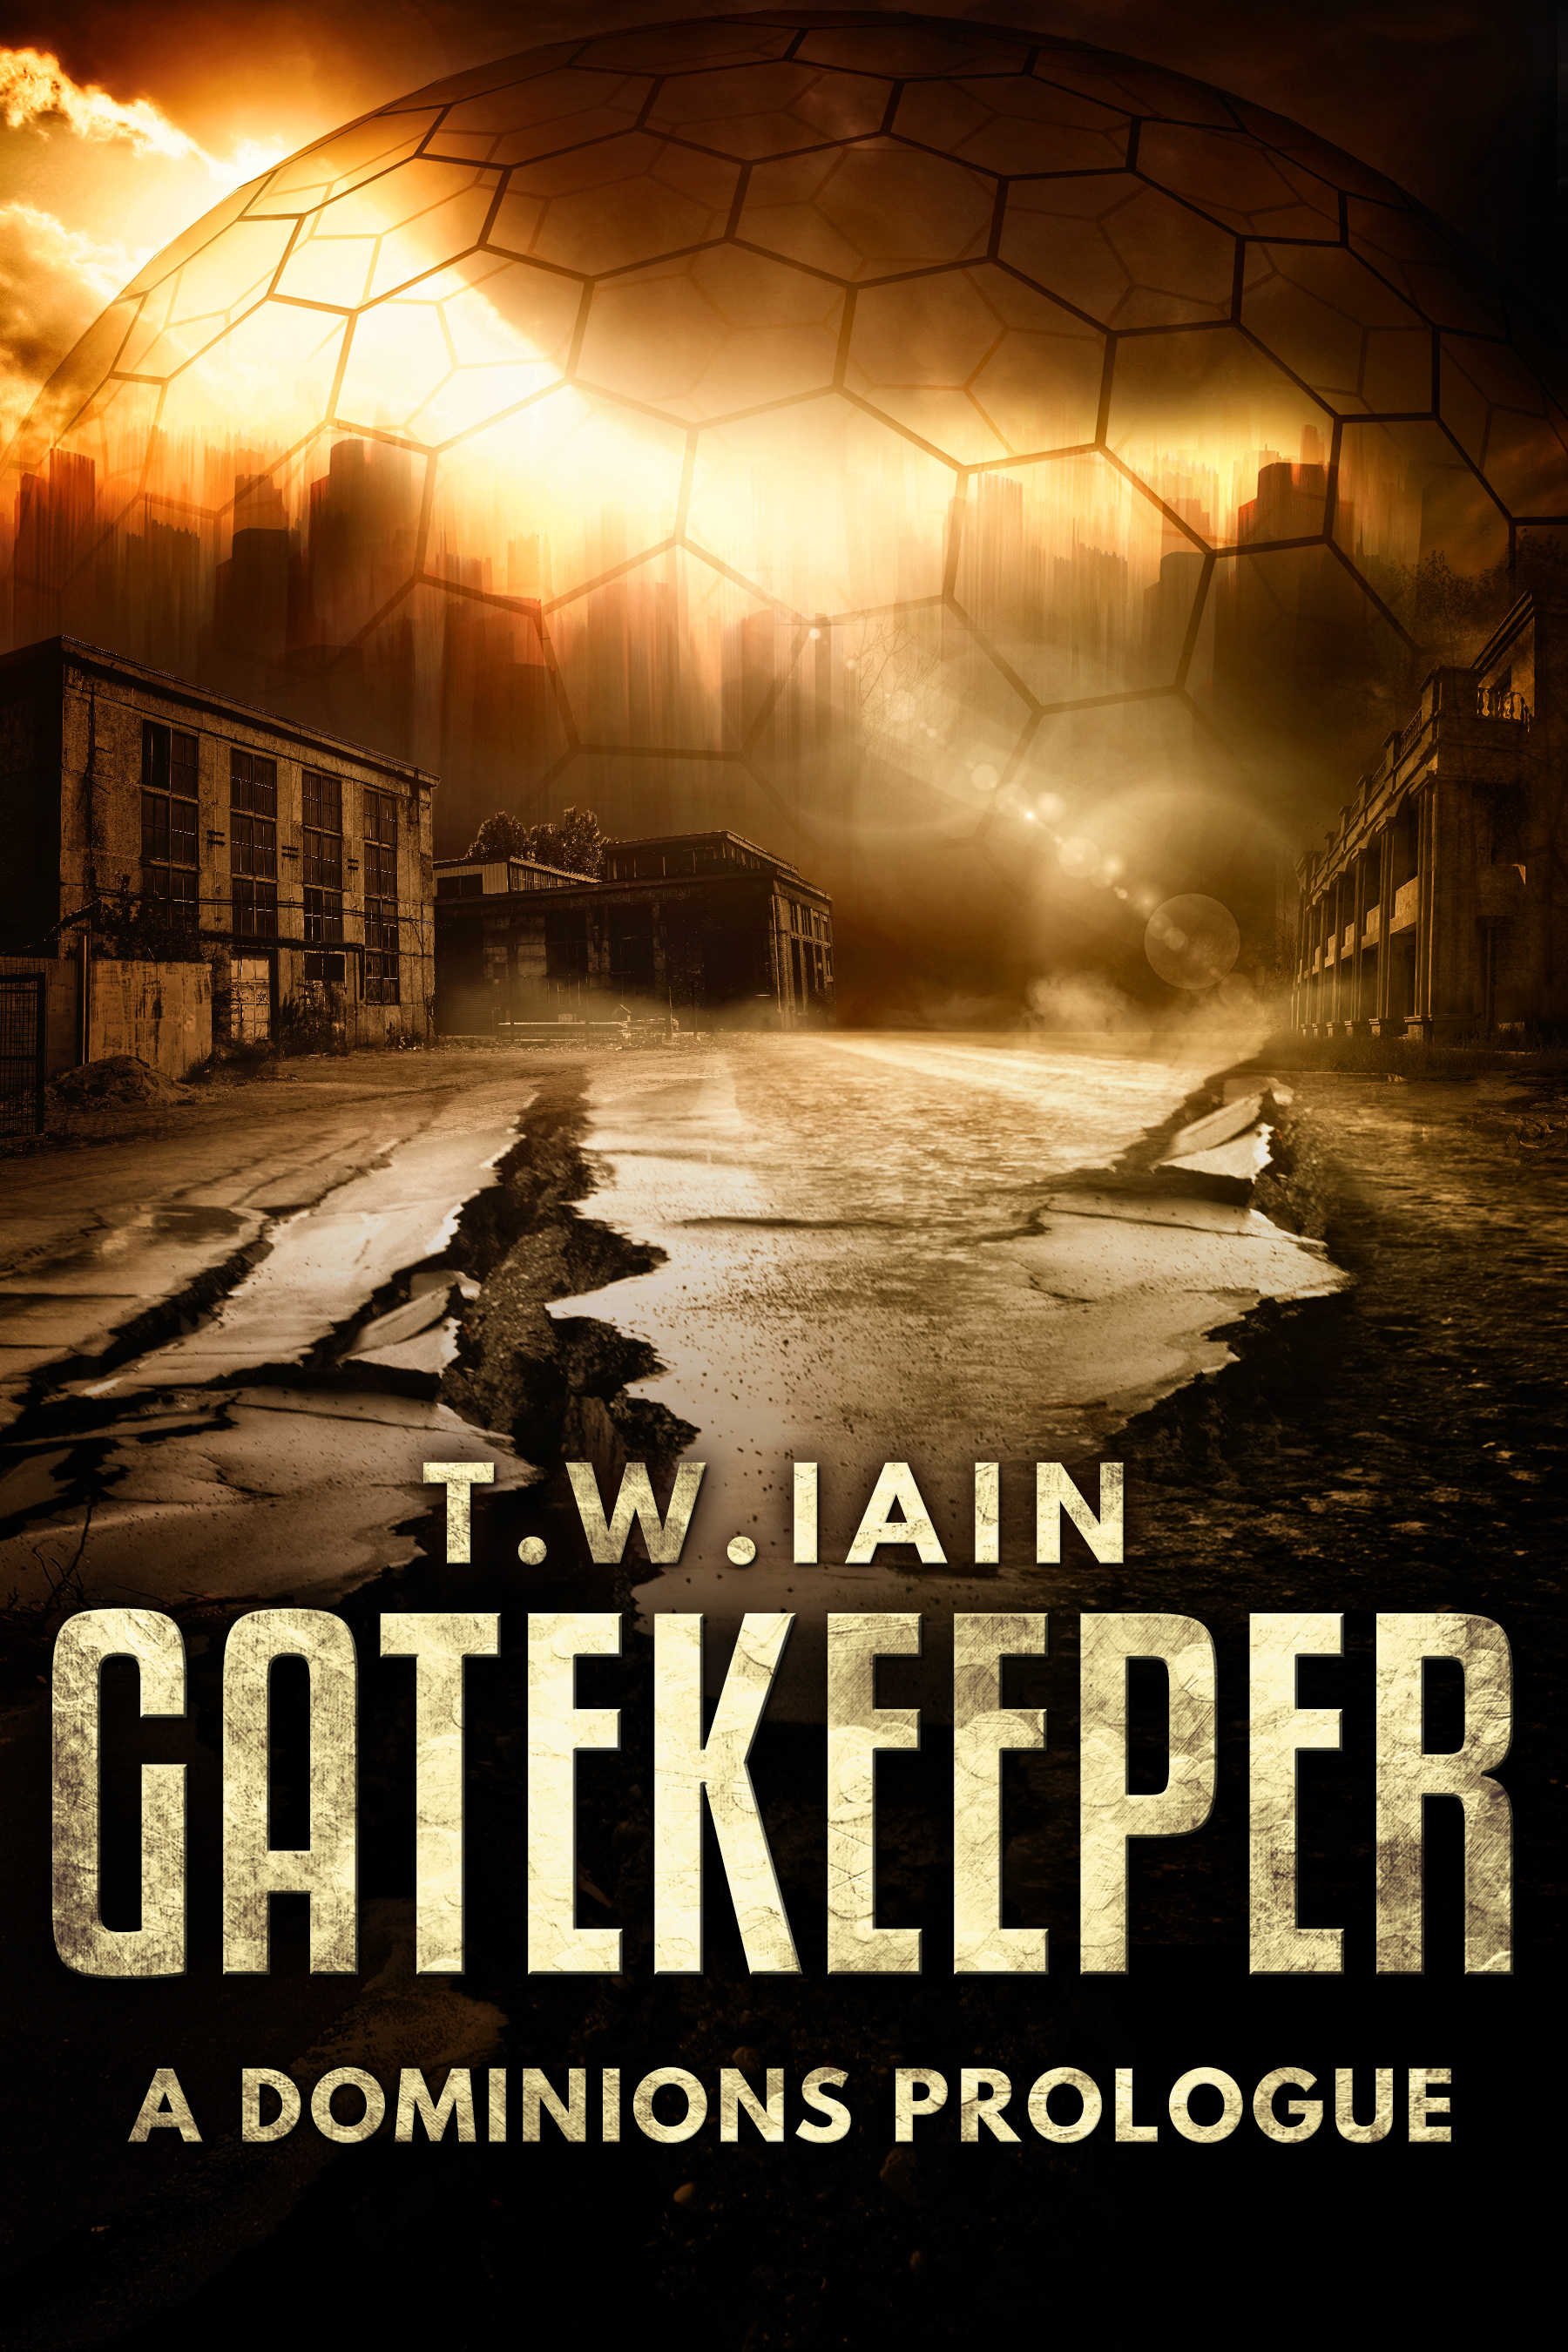 Gatekeeper (A Dominions Prologue)